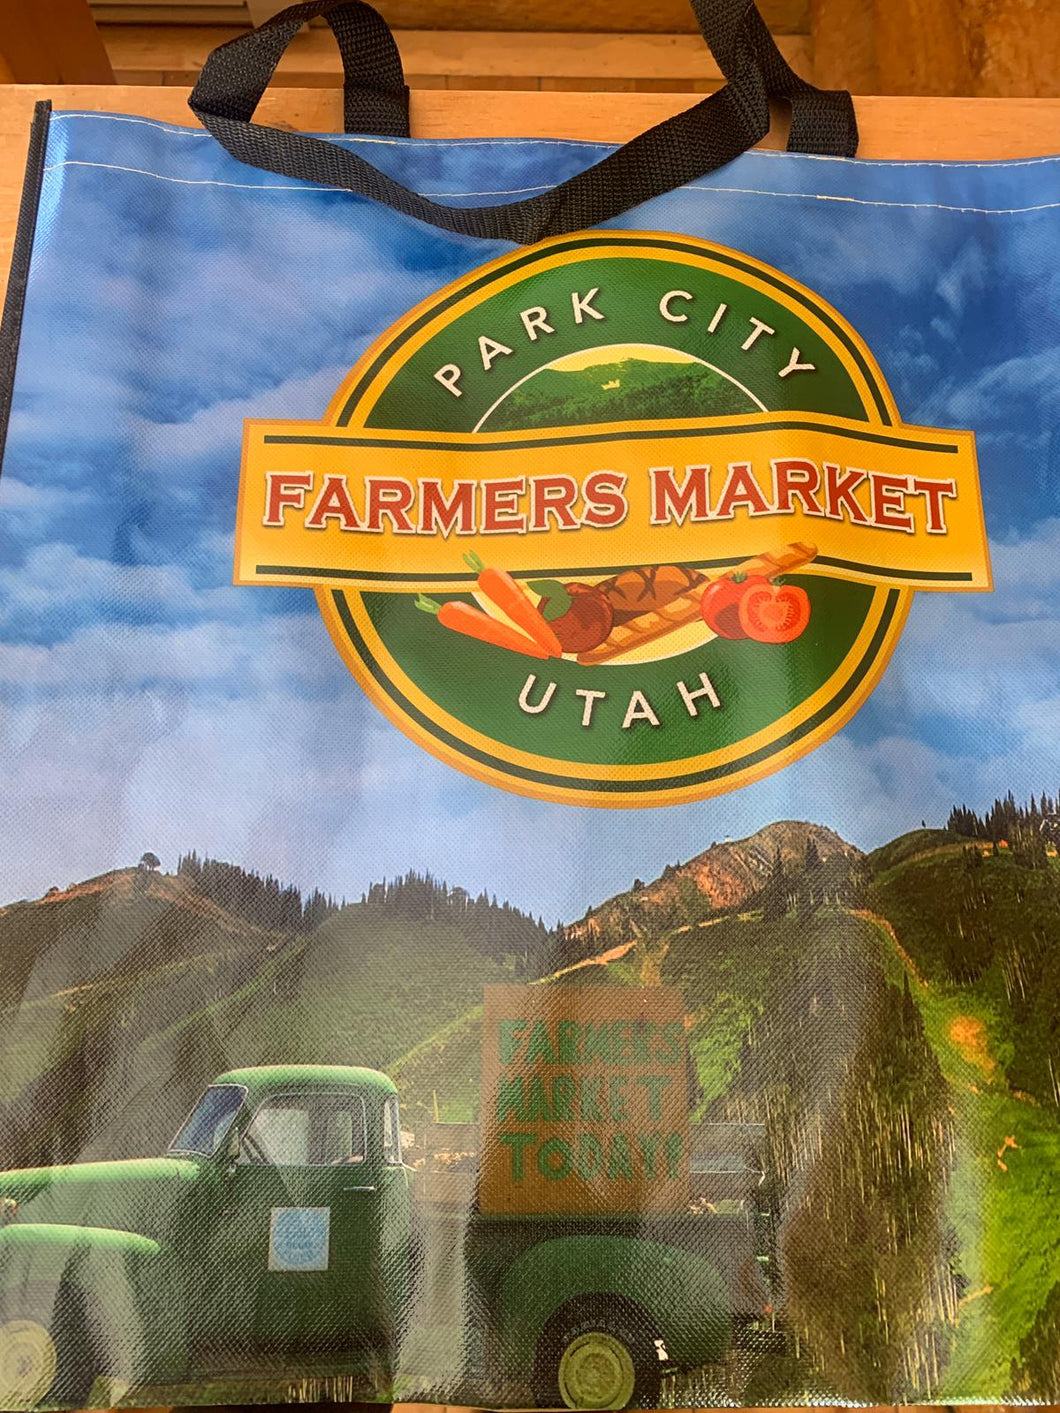 Park City Farmer's Market Re-Usable Shopping Bag